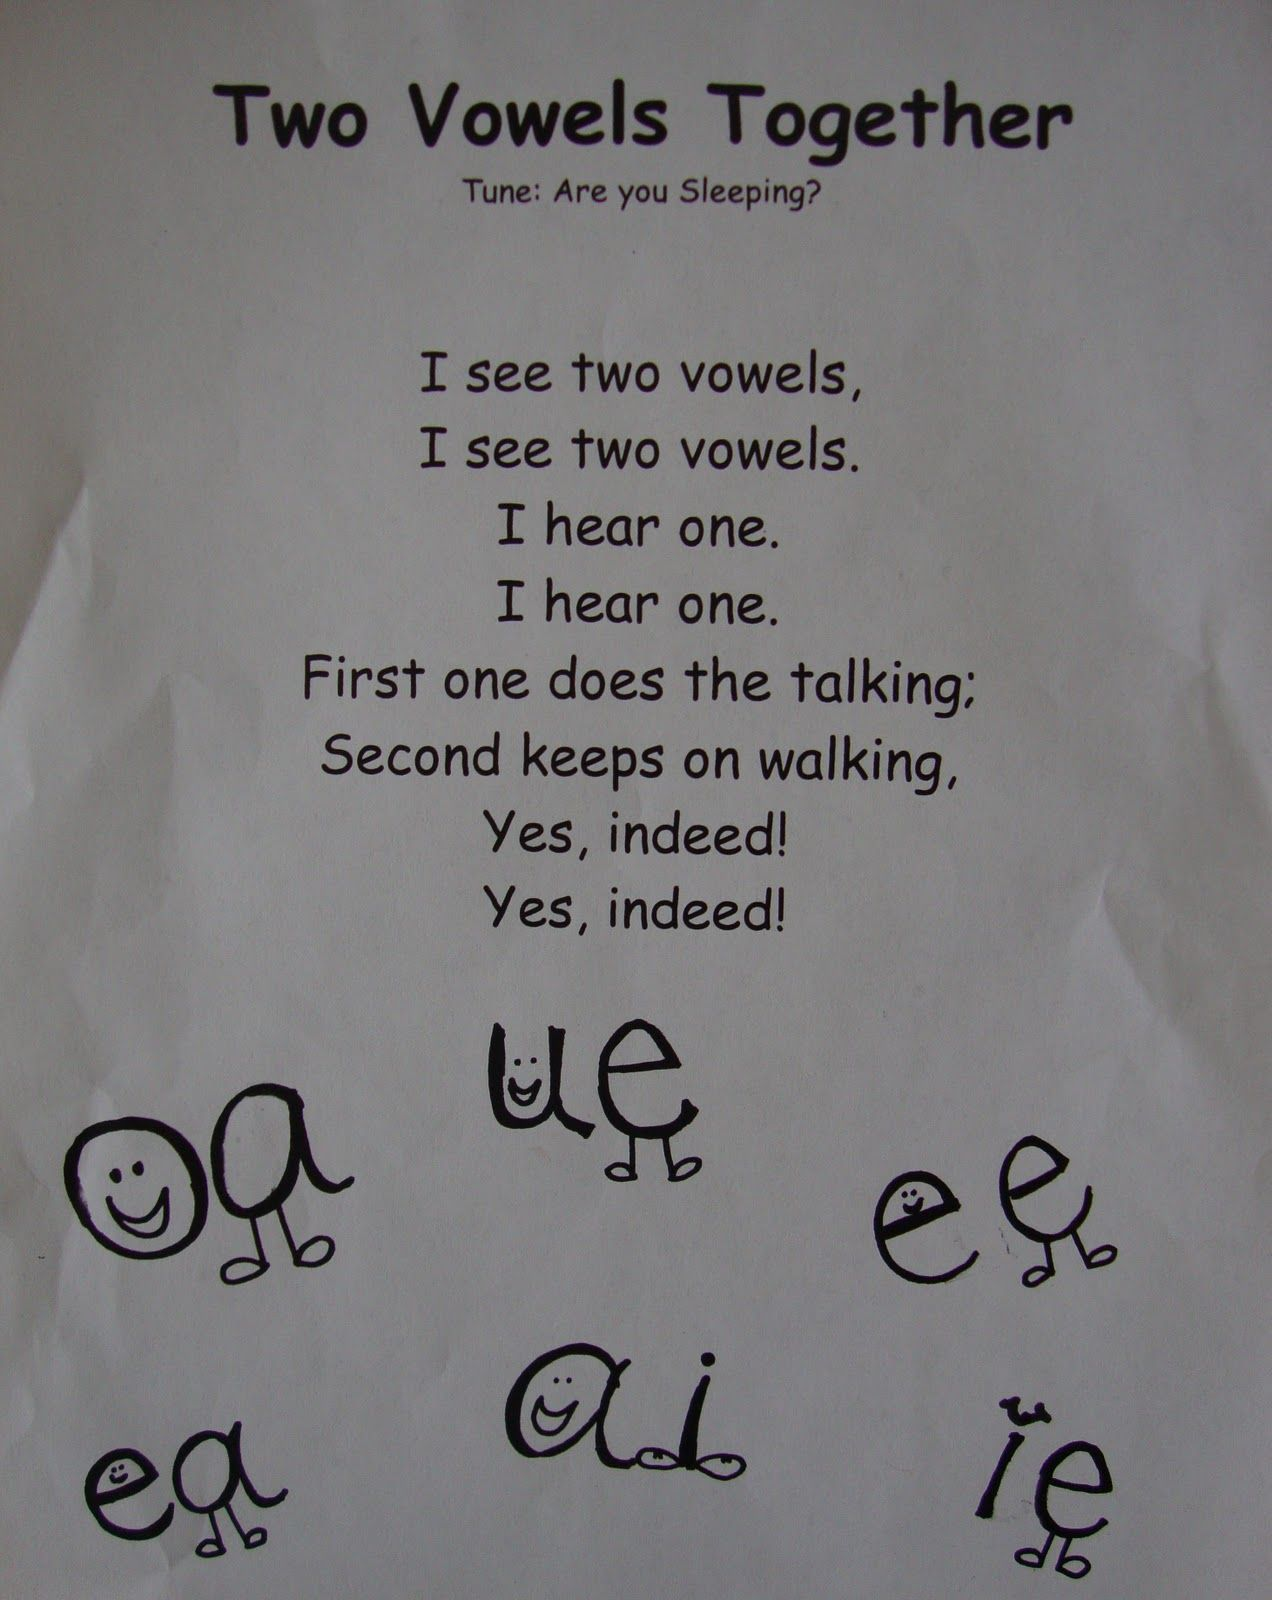 Vowel Sounds Poem